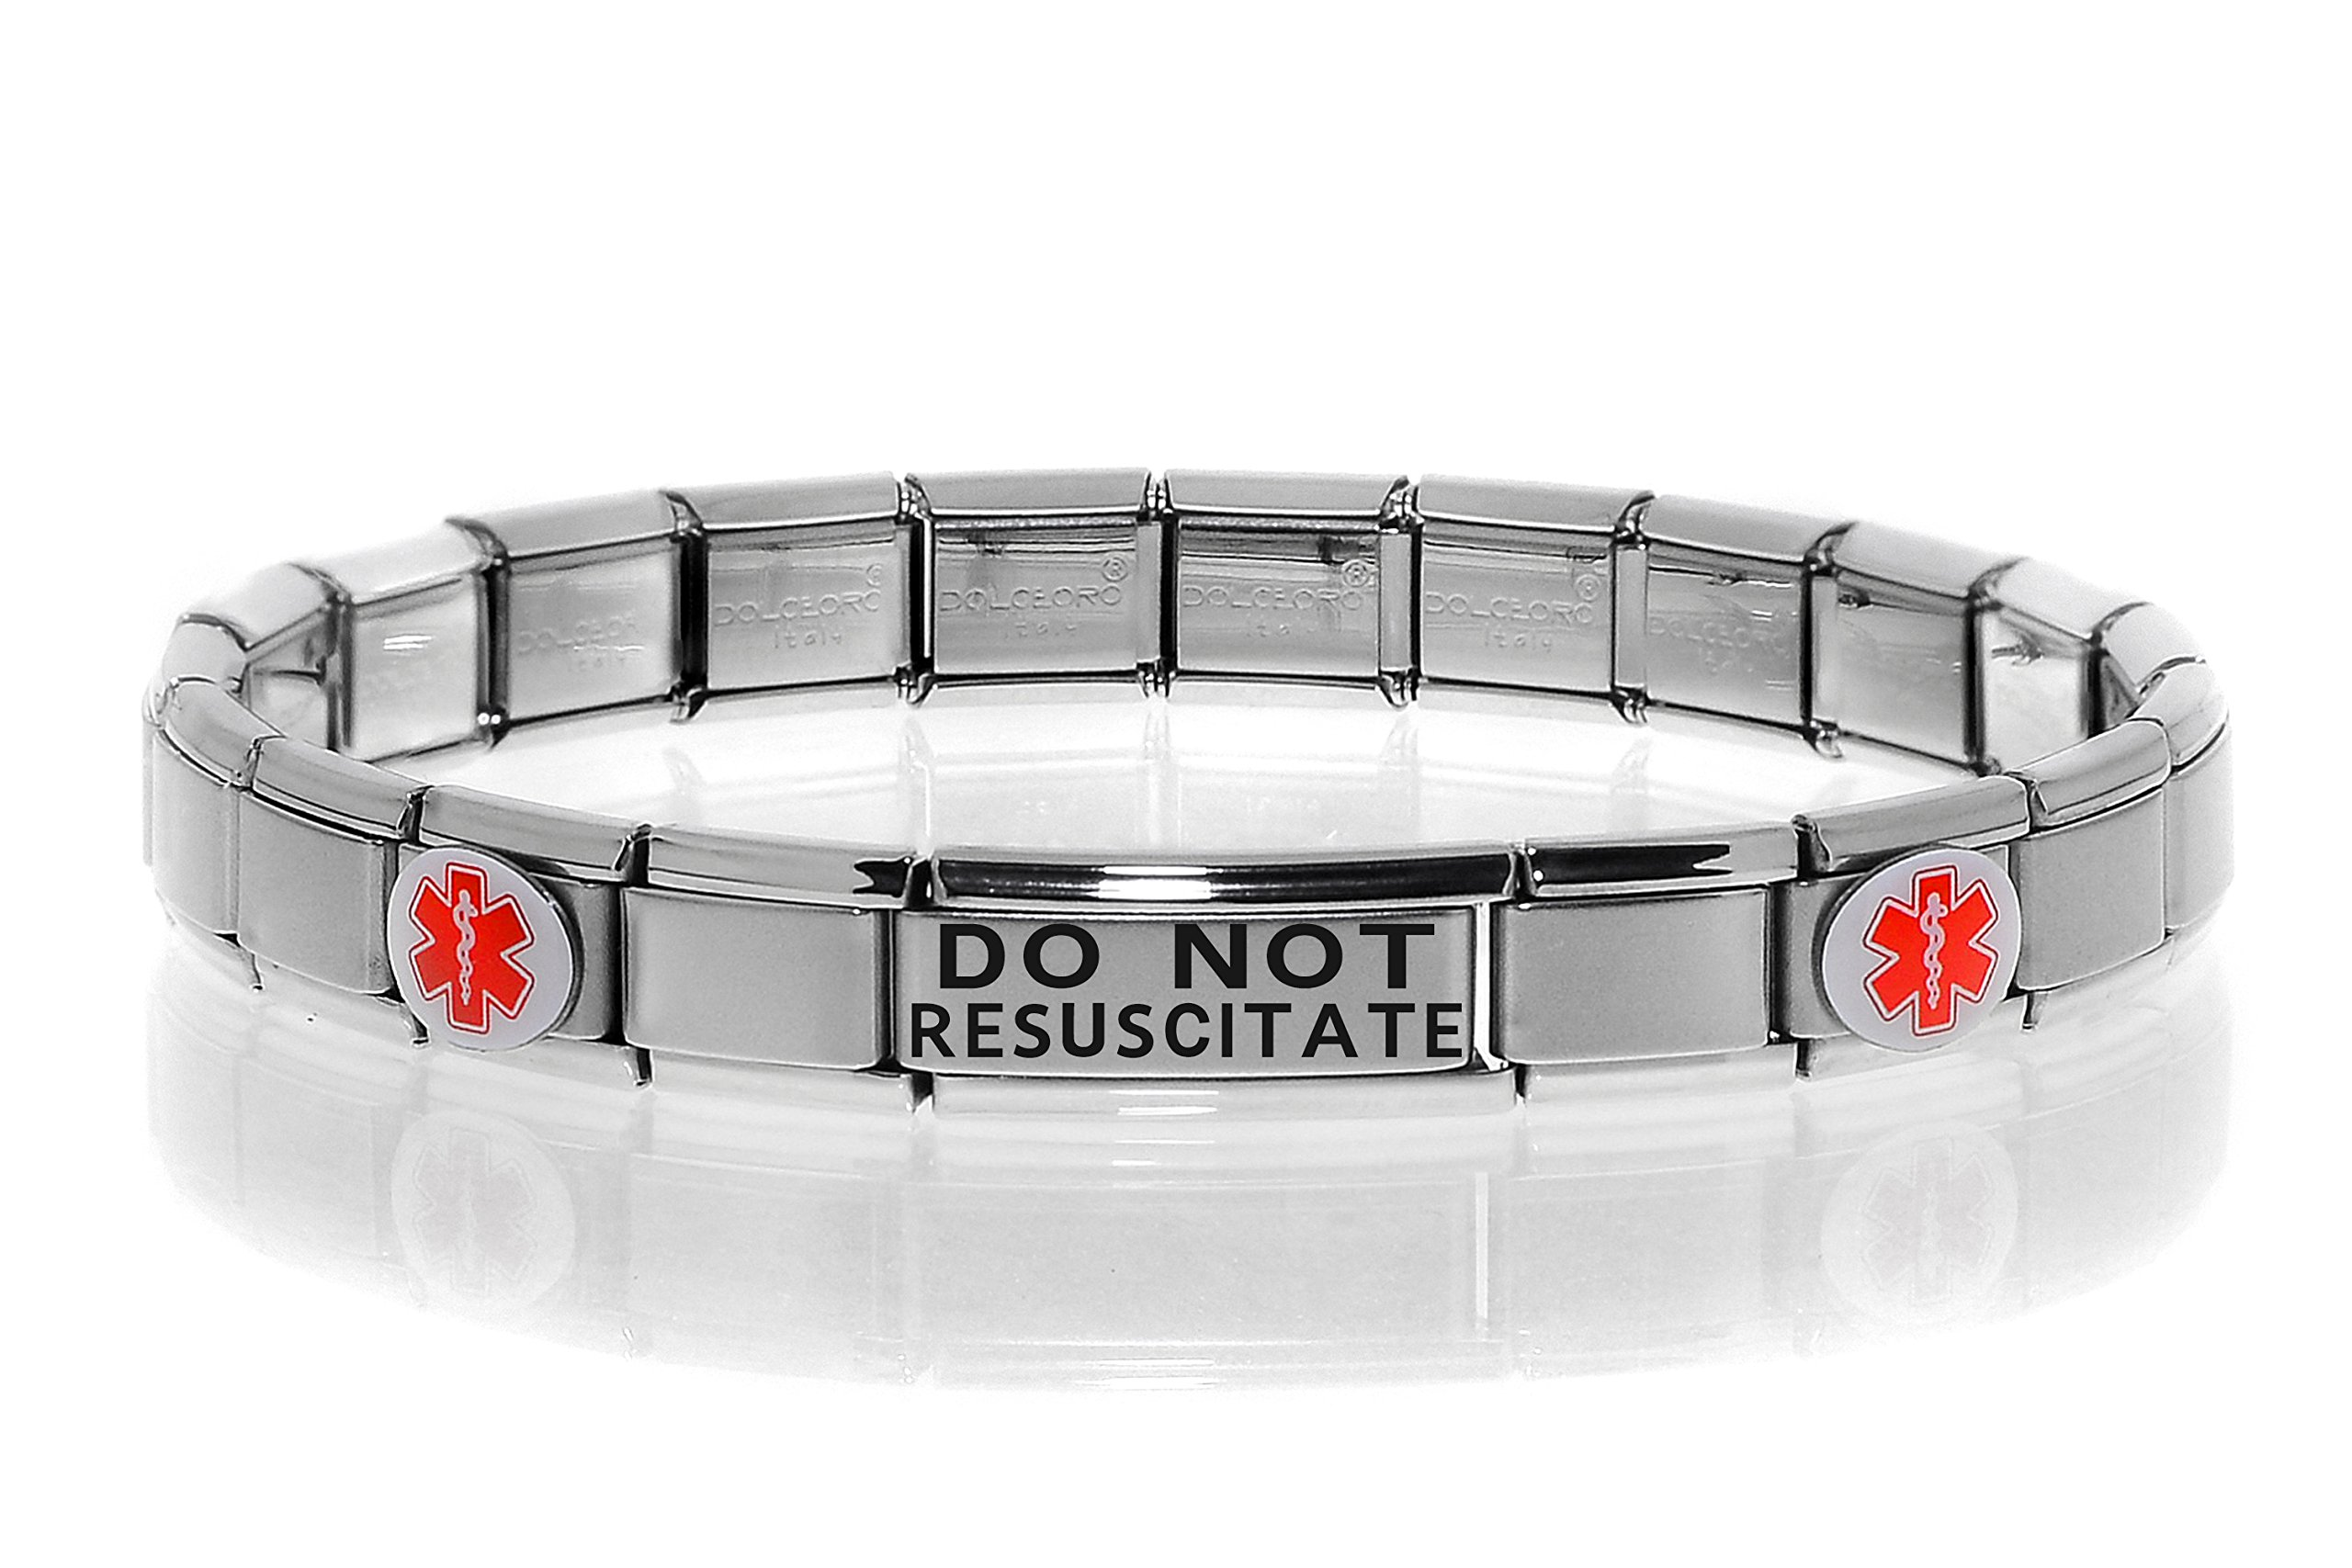 Dolceoro DO NOT RESUSCITATE Medical Alert Bracelet - Stainless Steel Stretchable Italian Style Modular Charm Links